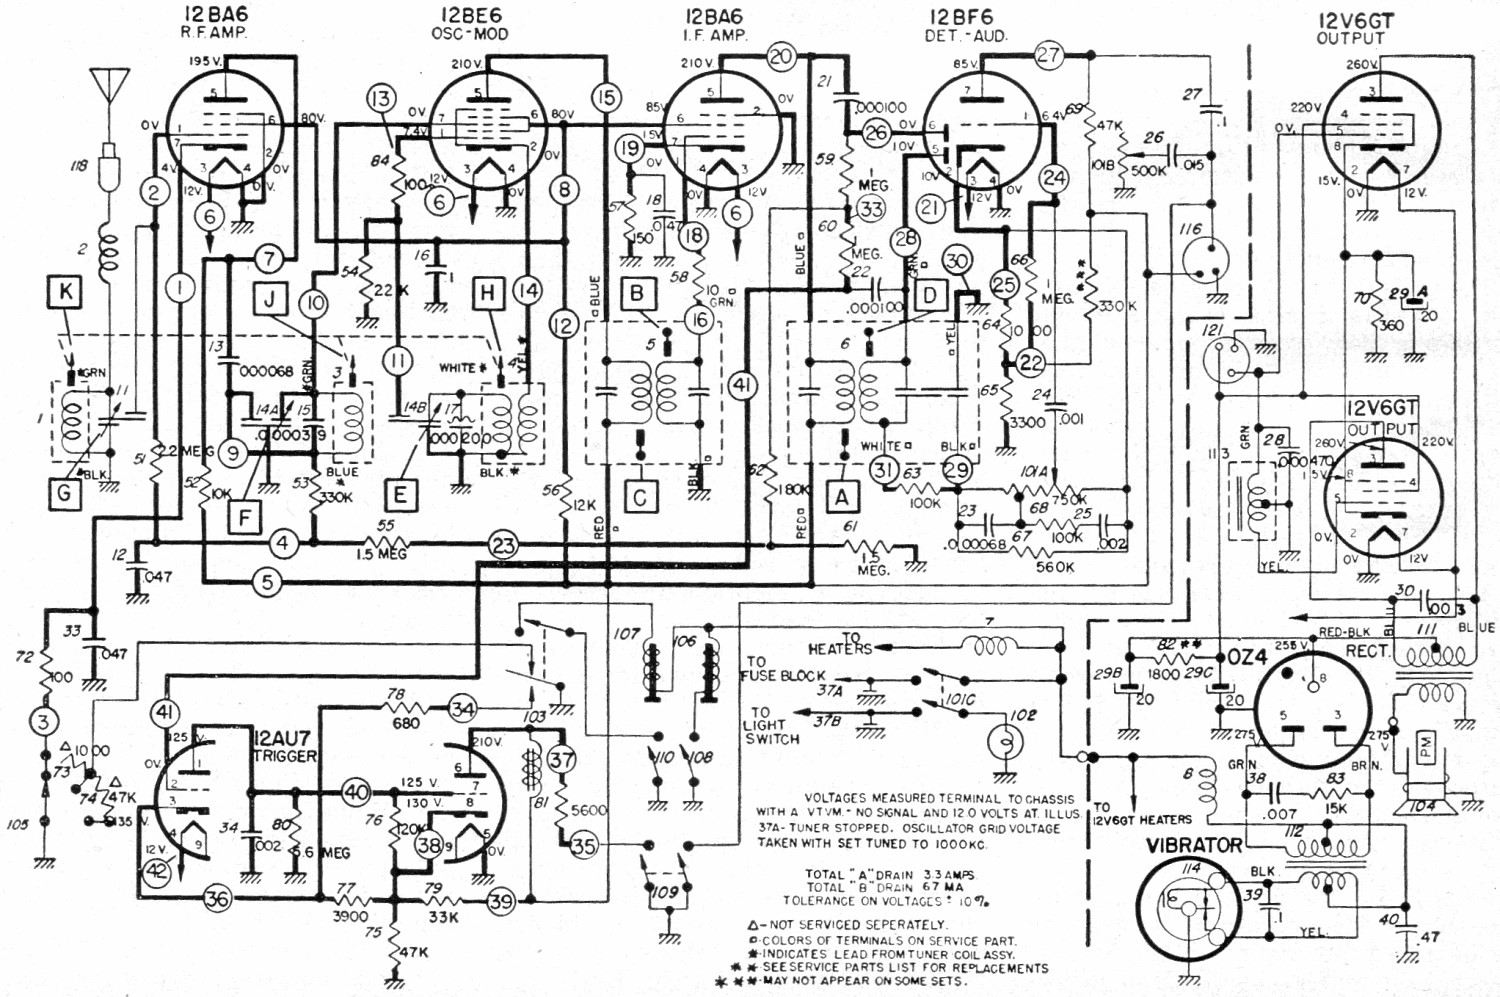 2000 pontiac grand prix bose stereo wiring diagram with Delco Am Fm Radio Wiring Diagram on 1995 Pontiac Grand Am Fuse Diagram further Delco Am Fm Radio Wiring Diagram together with 95 Camry Stereo Wiring Diagram additionally Which Head Unit Would Be The Better Fit T71895 moreover Gm Onstar Mirror Wiring Diagram.